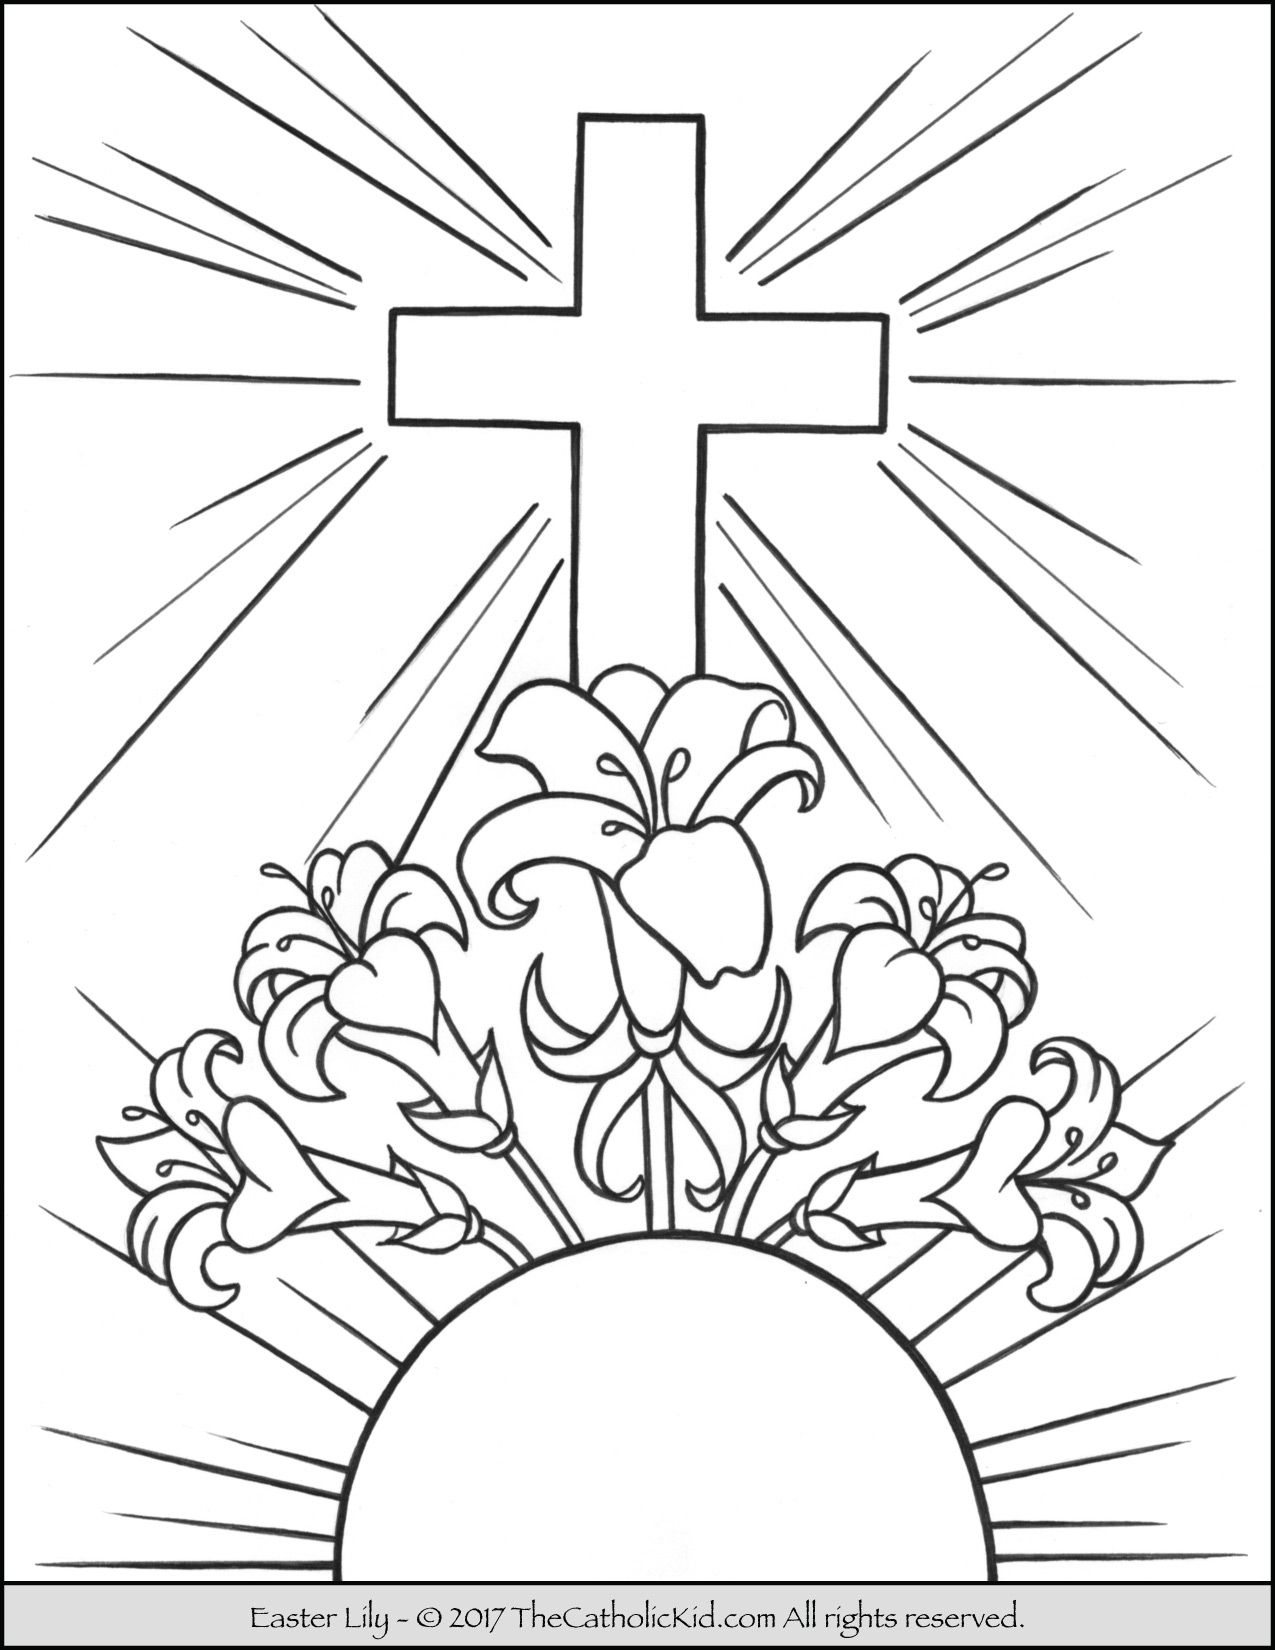 easter lily coloring page - Catholic Coloring Pages Easter